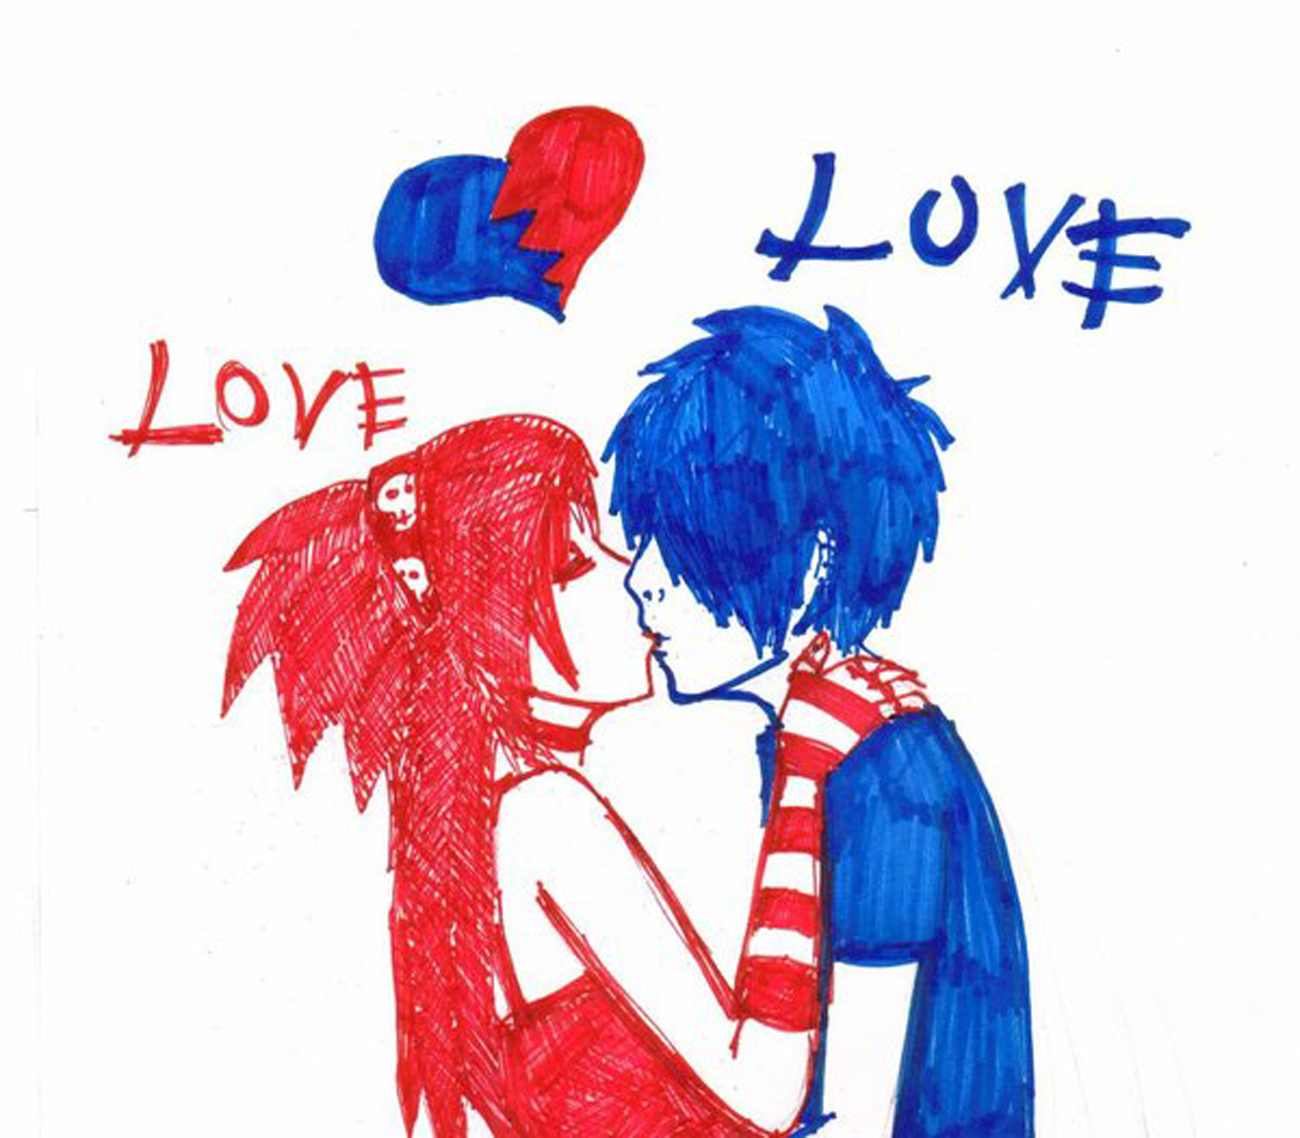 Love Wallpapers Emo : [Emo Love] - Emo Photo (8825376) - Fanpop